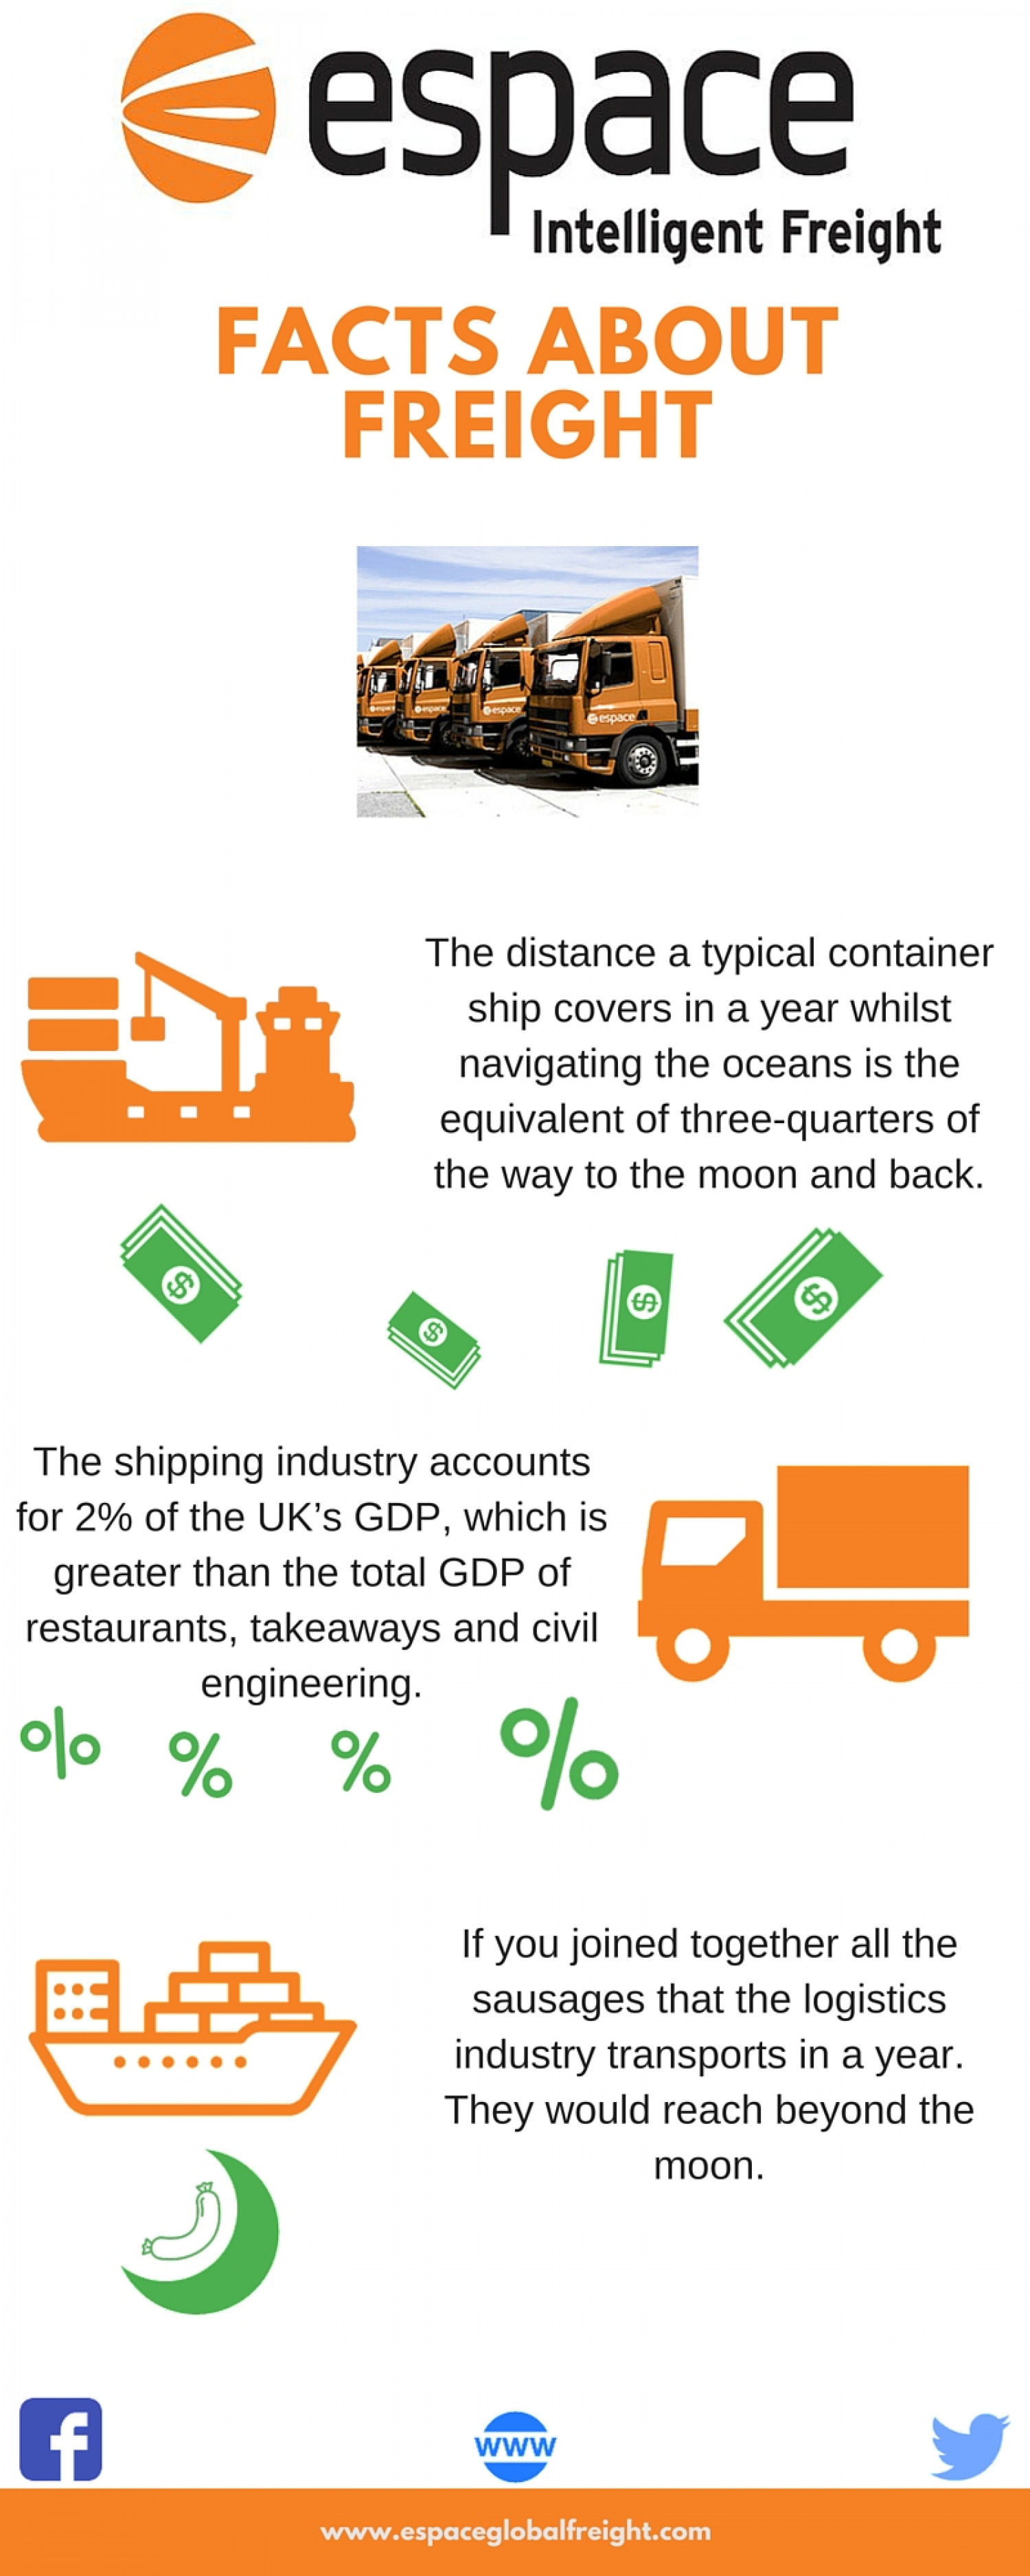 Espace Europe - The Facts about Freight Infographic